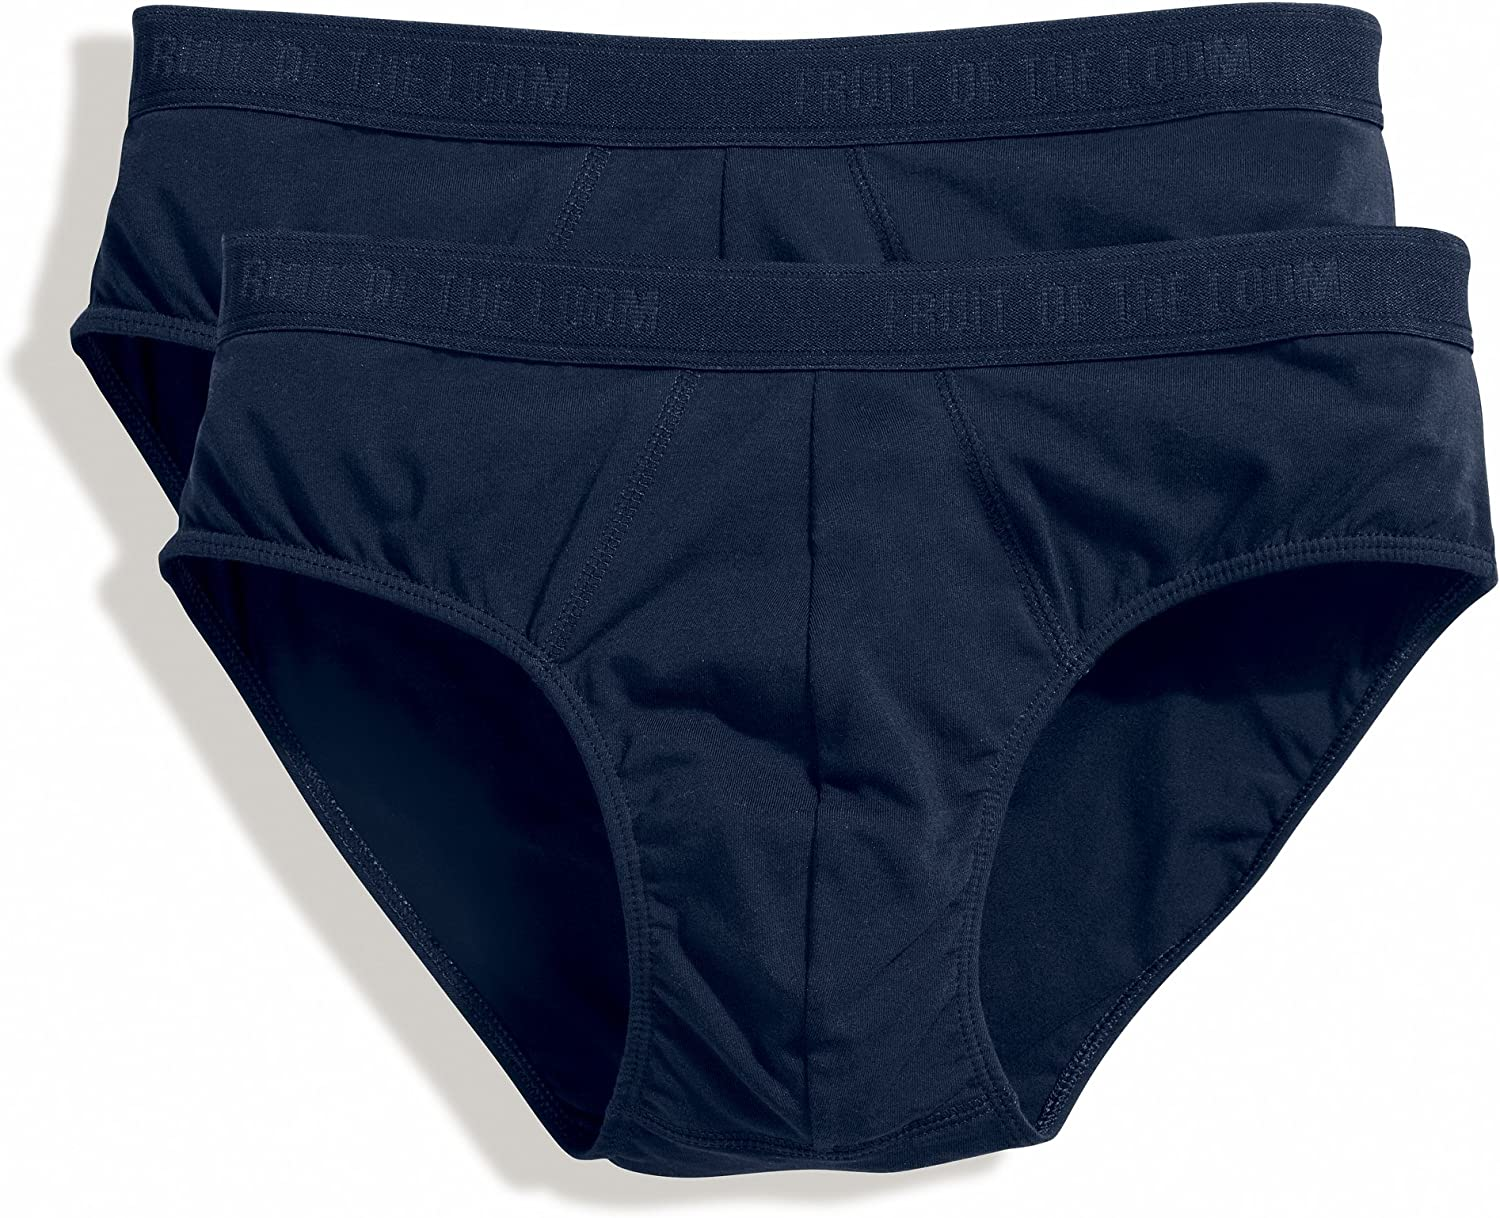 Fruit of the Loom Mens Classic Sport Briefs (Pack of 2)